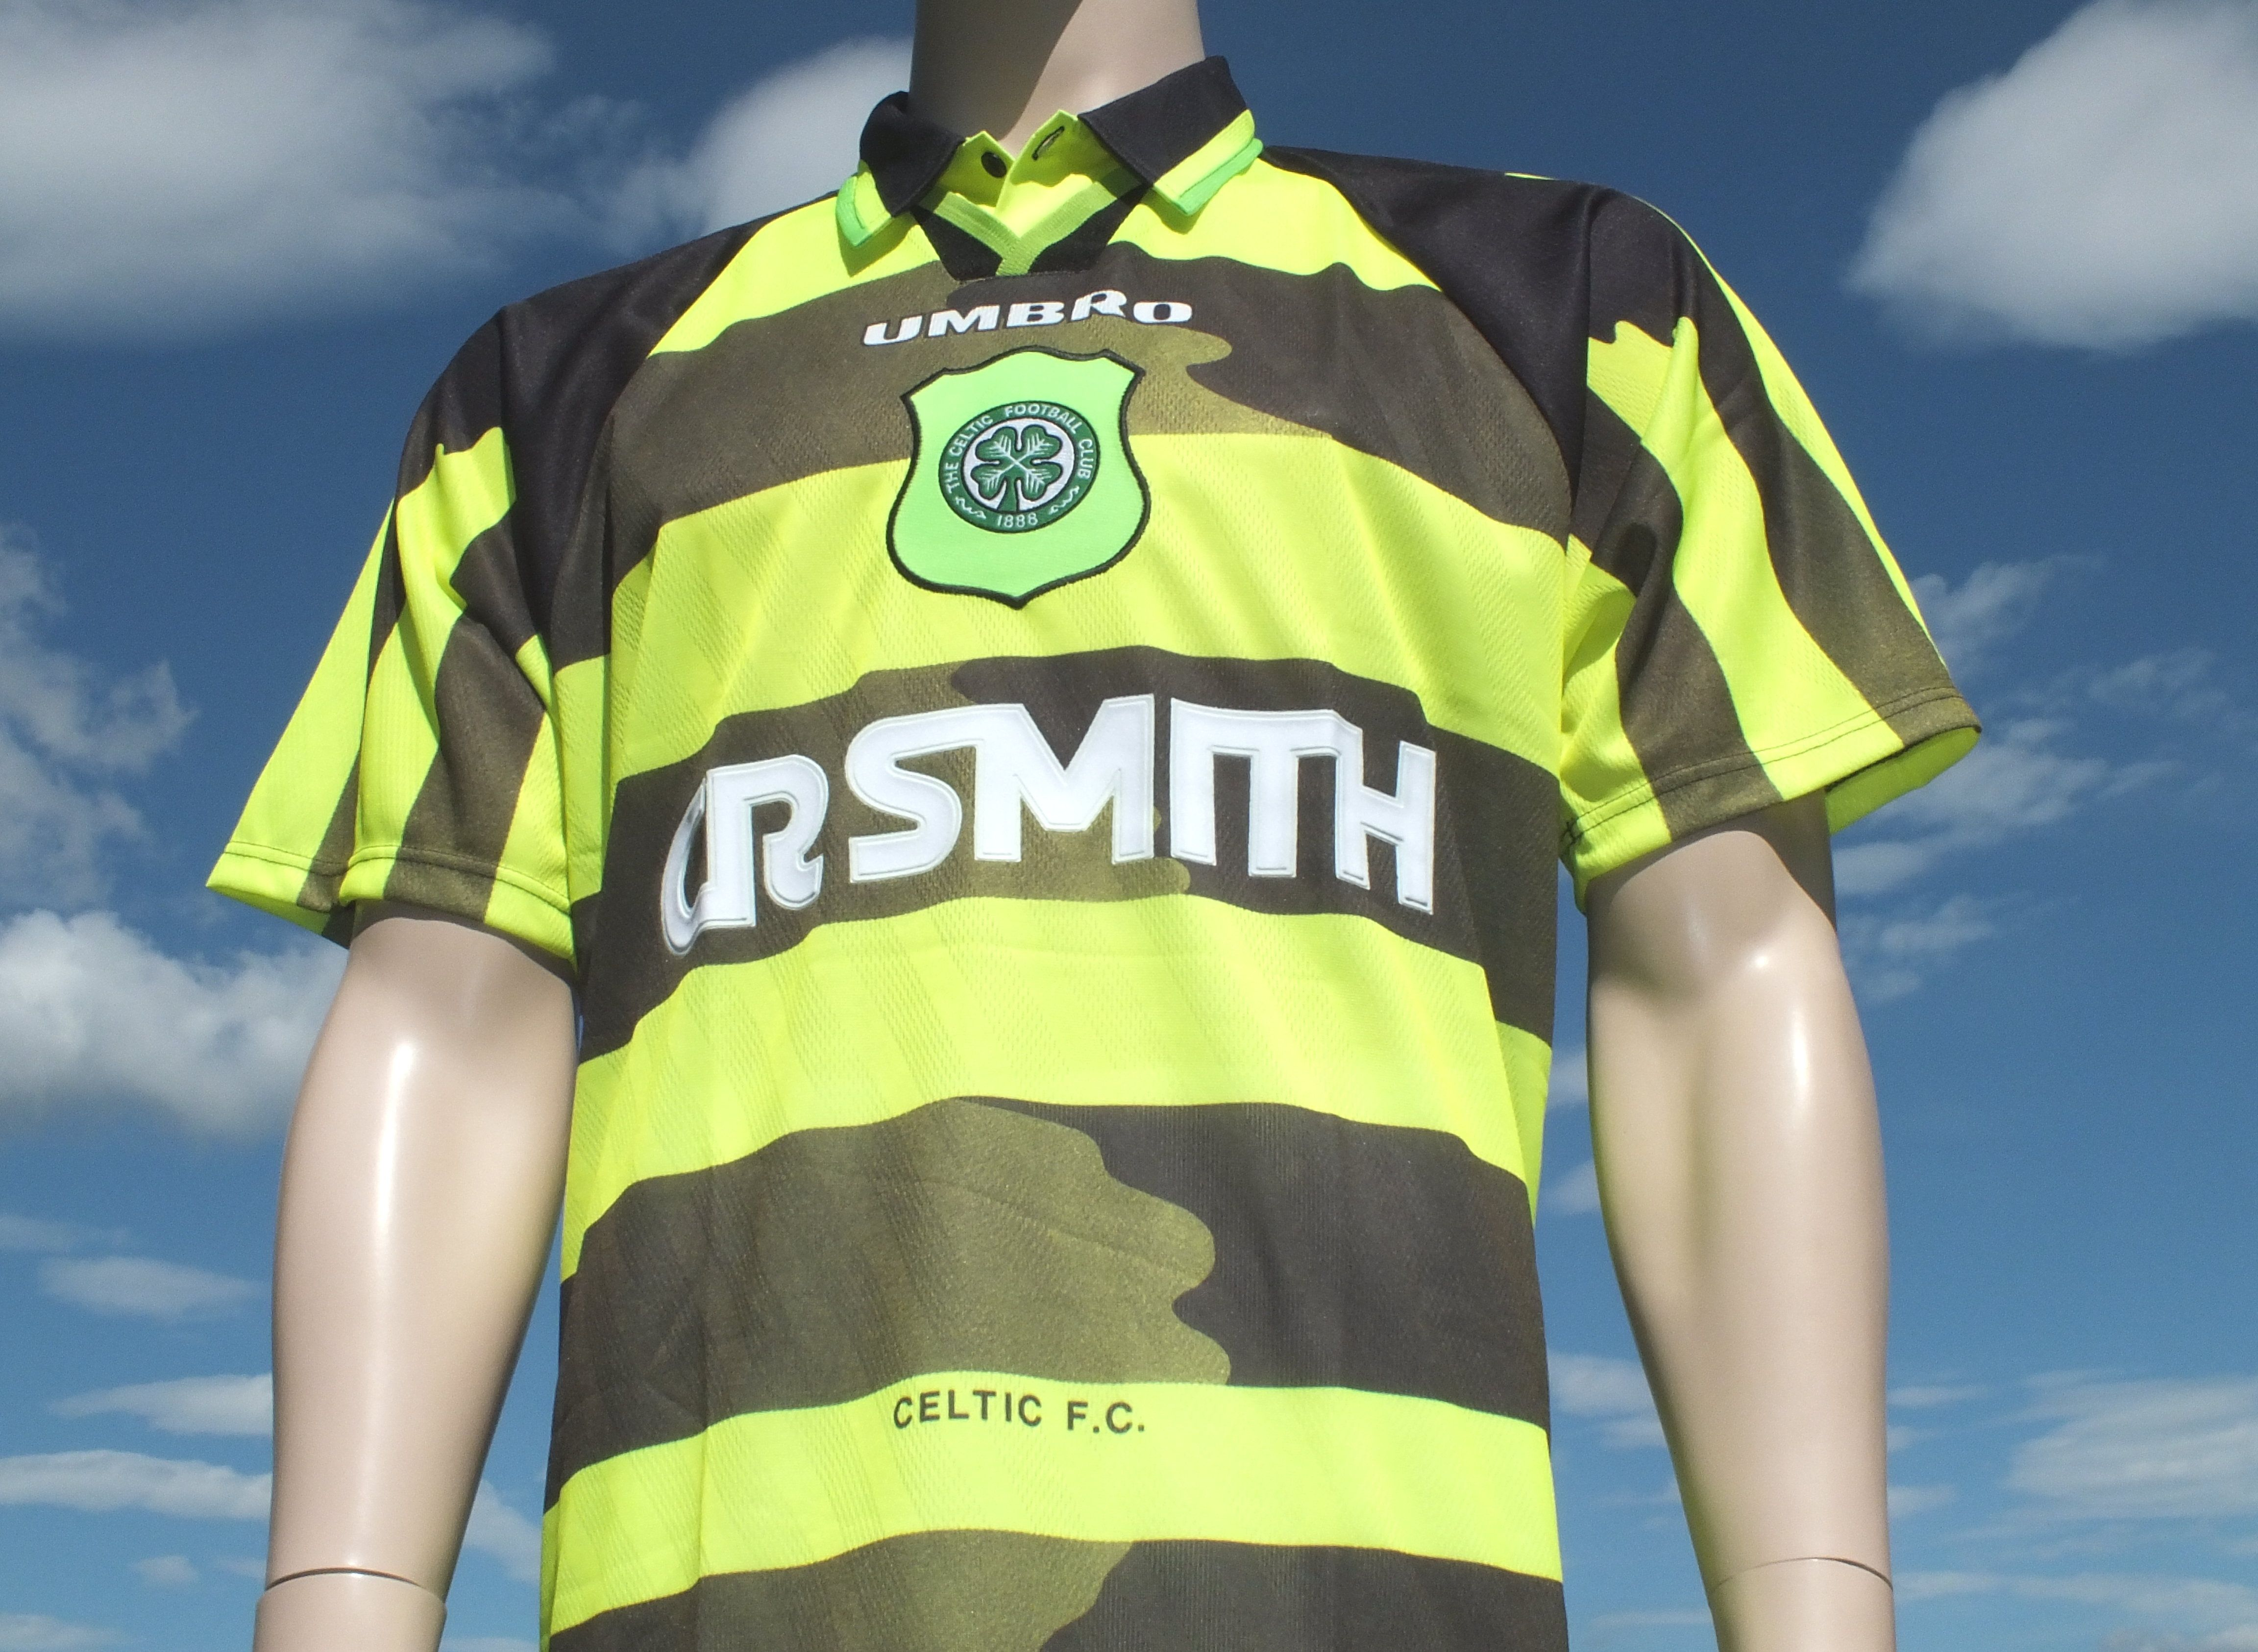 8a8f3b940 Celtic FC Away Shirt 1996-1997 Umbro CR Smith Bumblebee Replica ...